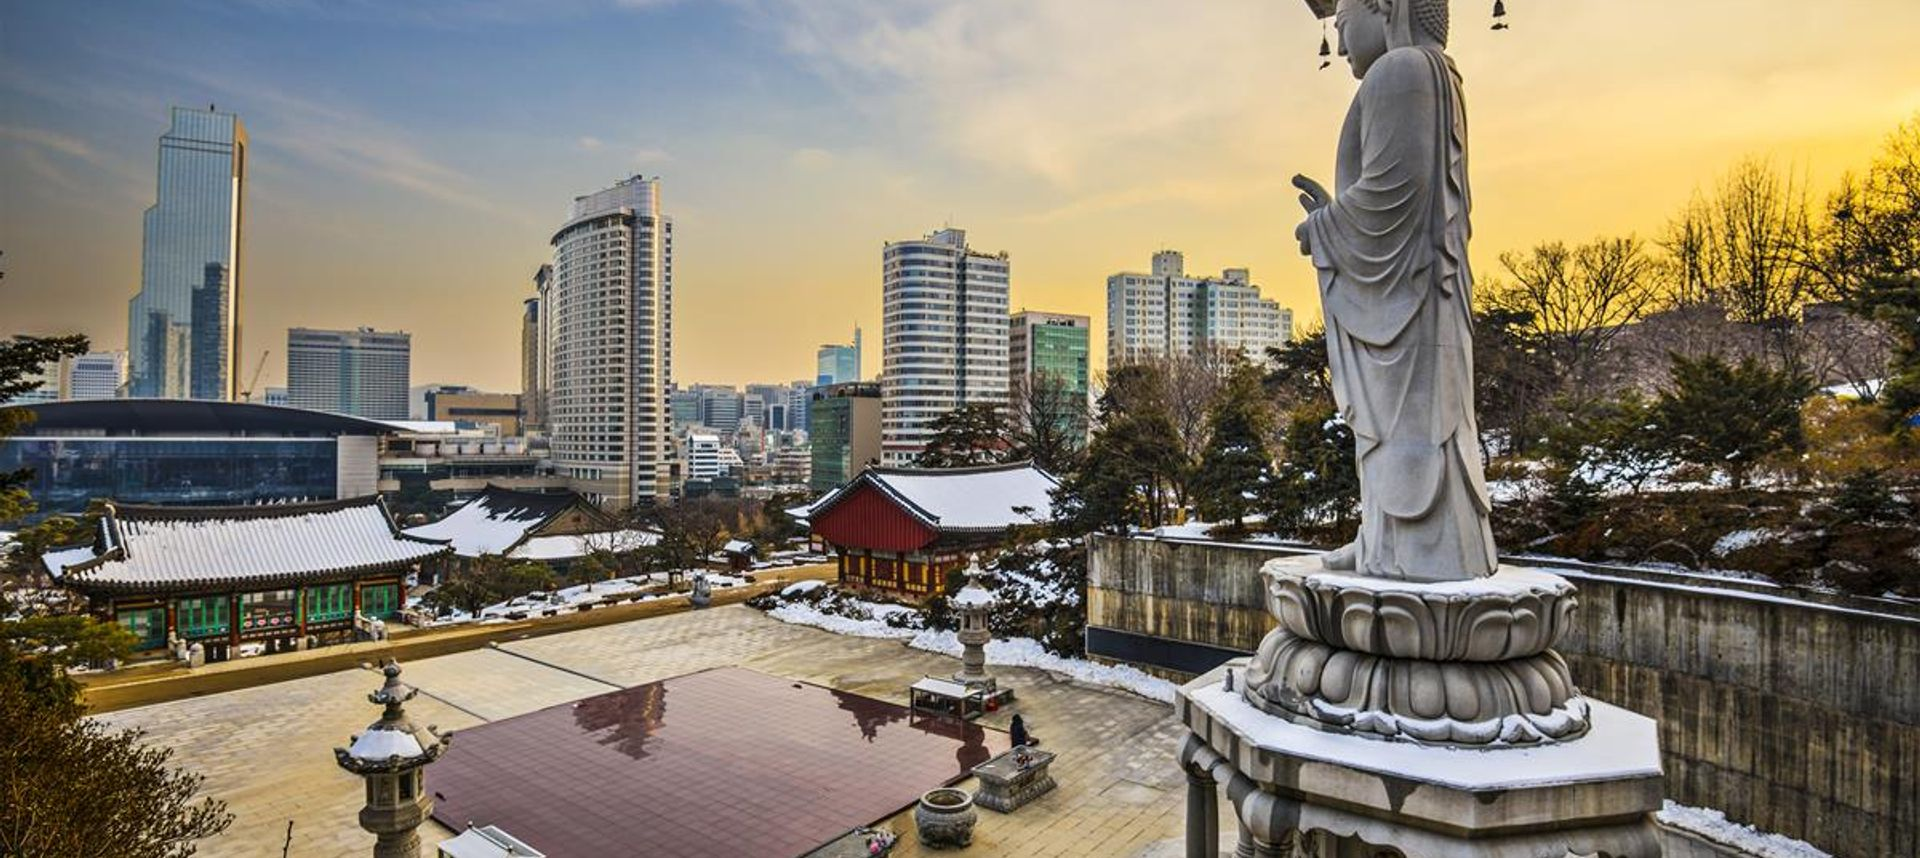 Discover peaceful temples in Korea's southern mountains (Dreamstime.com)